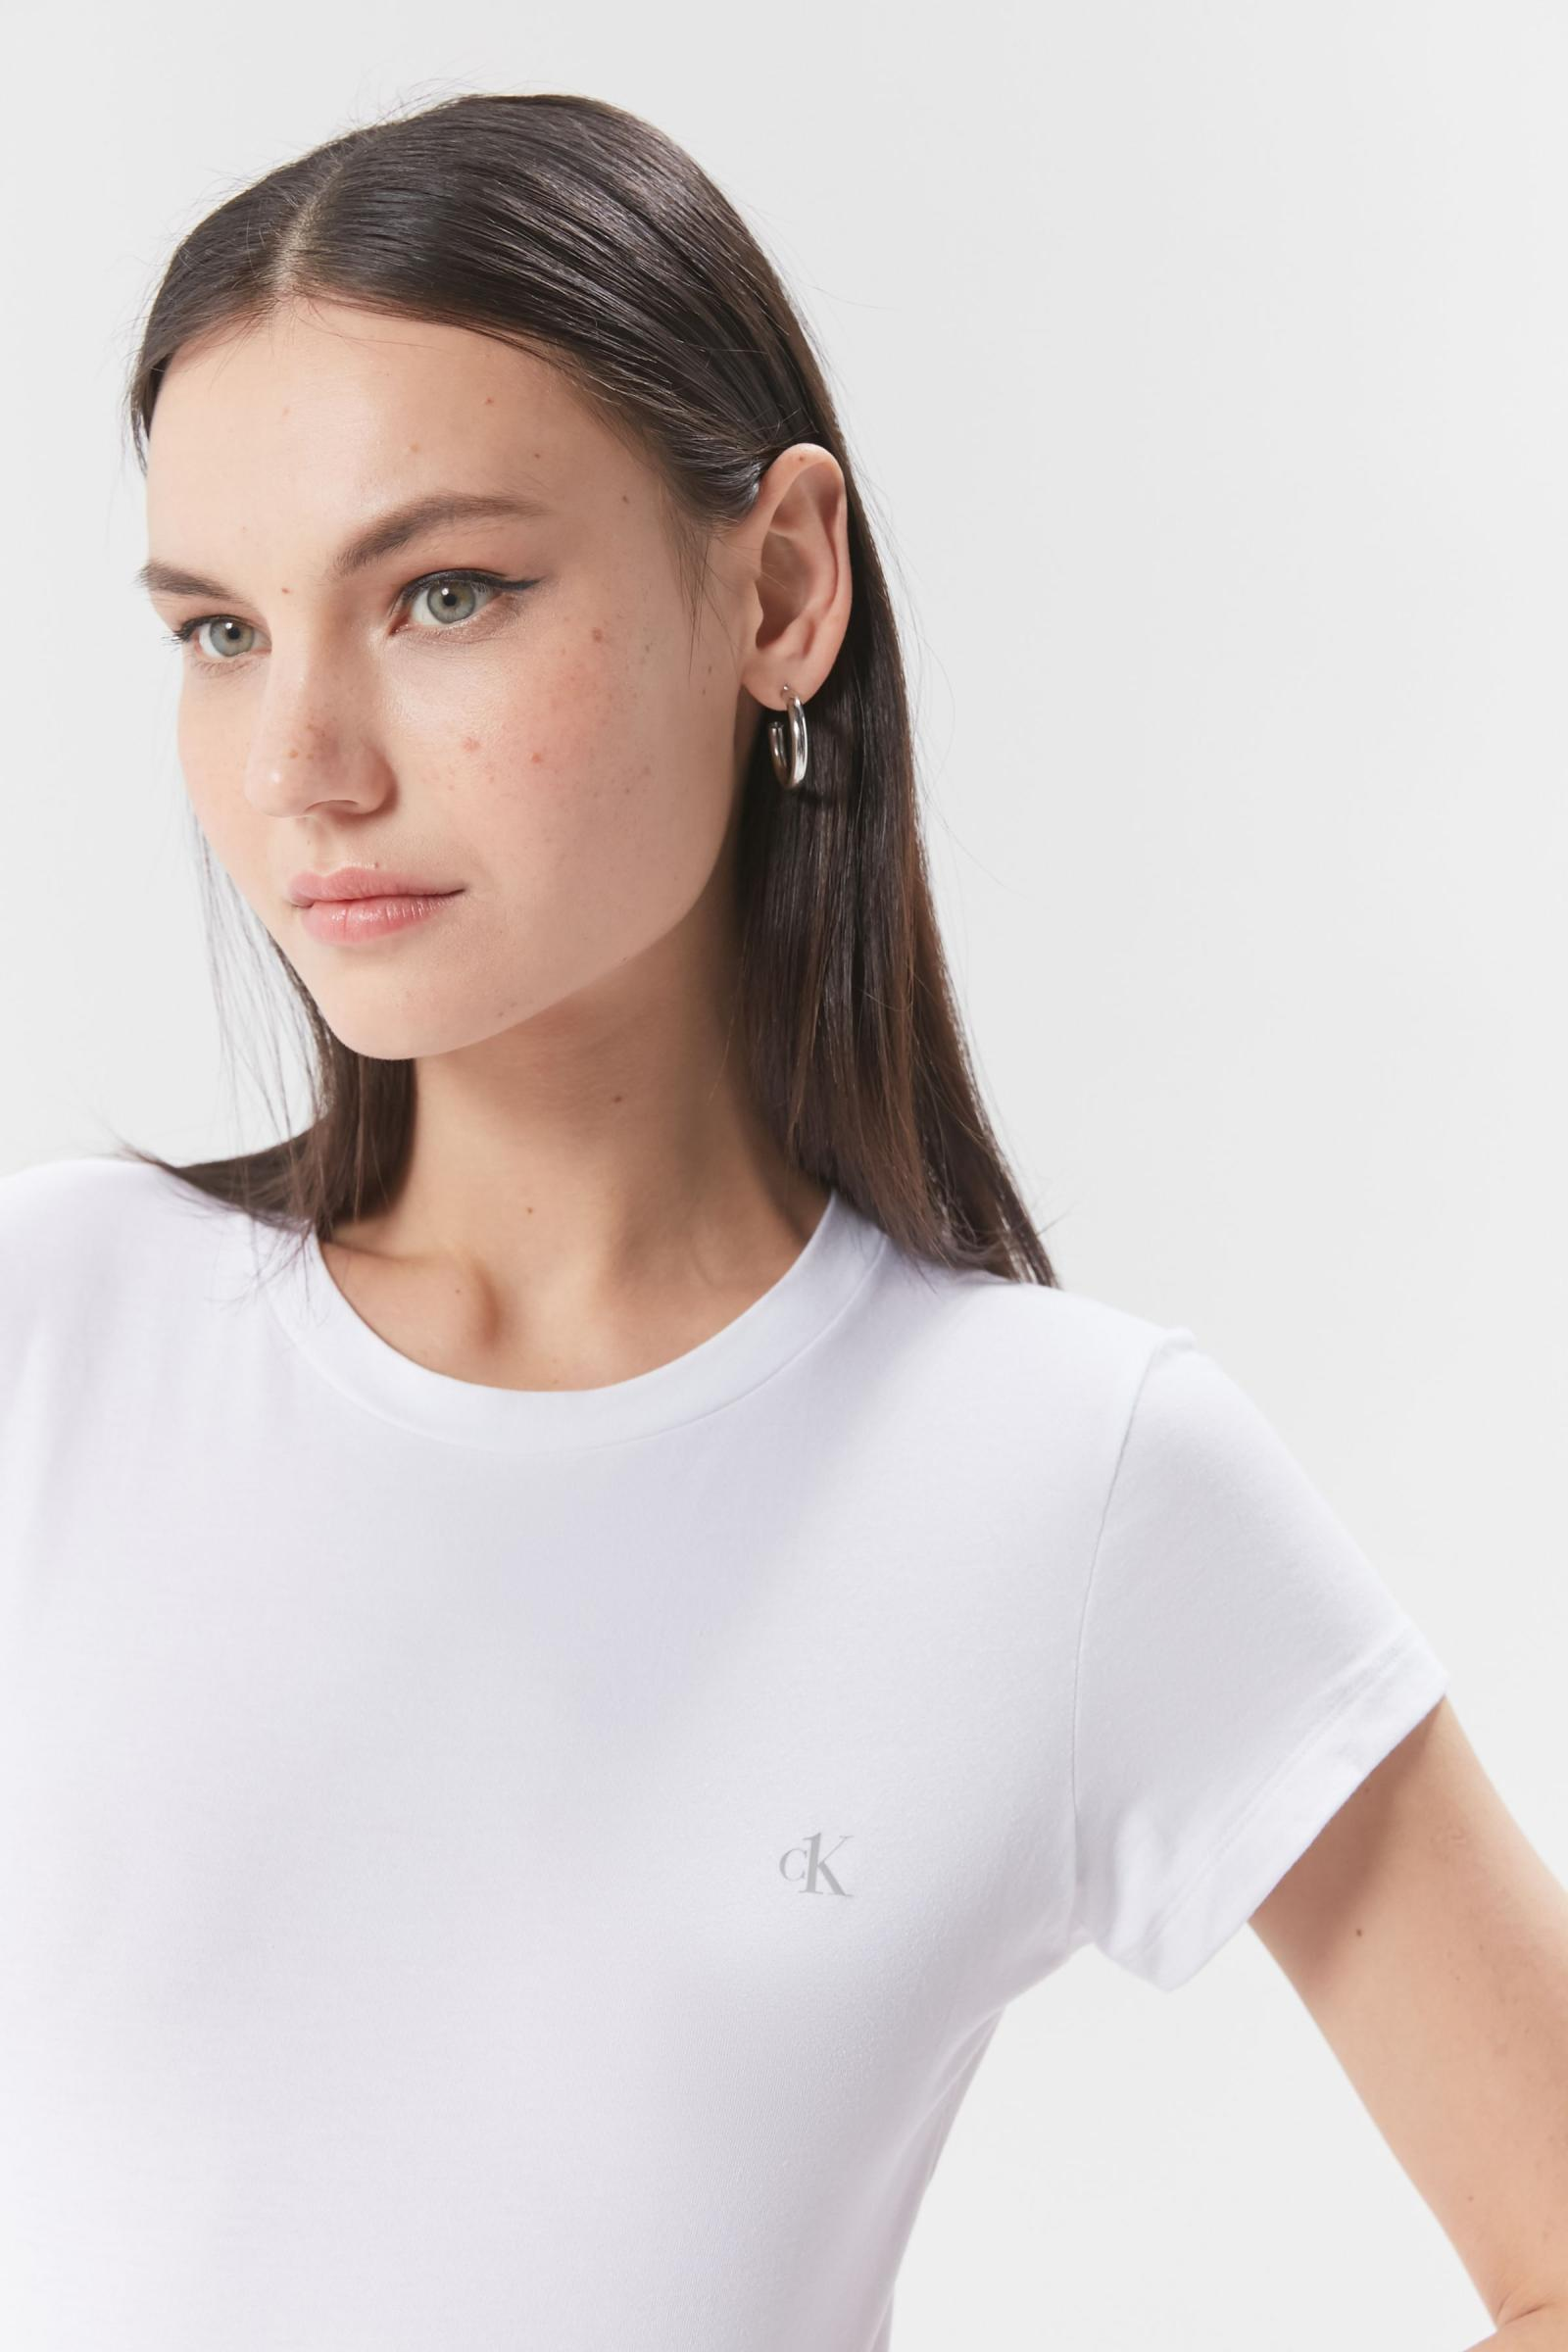 Calvin Klein CK One T恤連體衣 | Urban Outfitters 臺灣